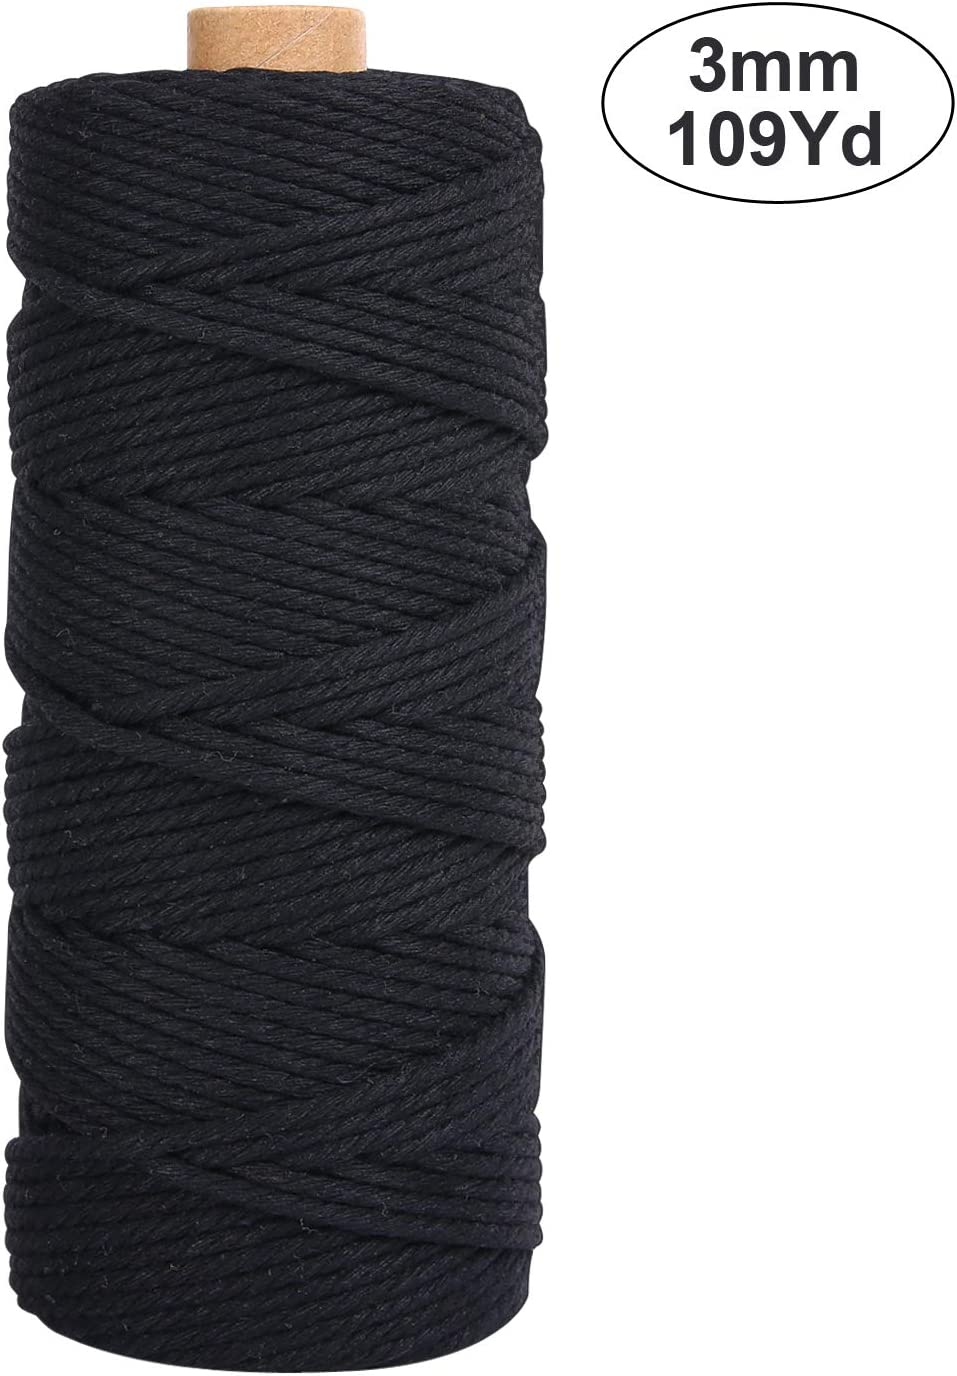 Macrame Cotton Cord 3mm 109 Yards 100/% Natural Macrame Cotton Rope Crafts Perfect for Wall Hanging Knitting Plant Hangers Decorative Projects 4 Strand Twisted Cotton Cord Black